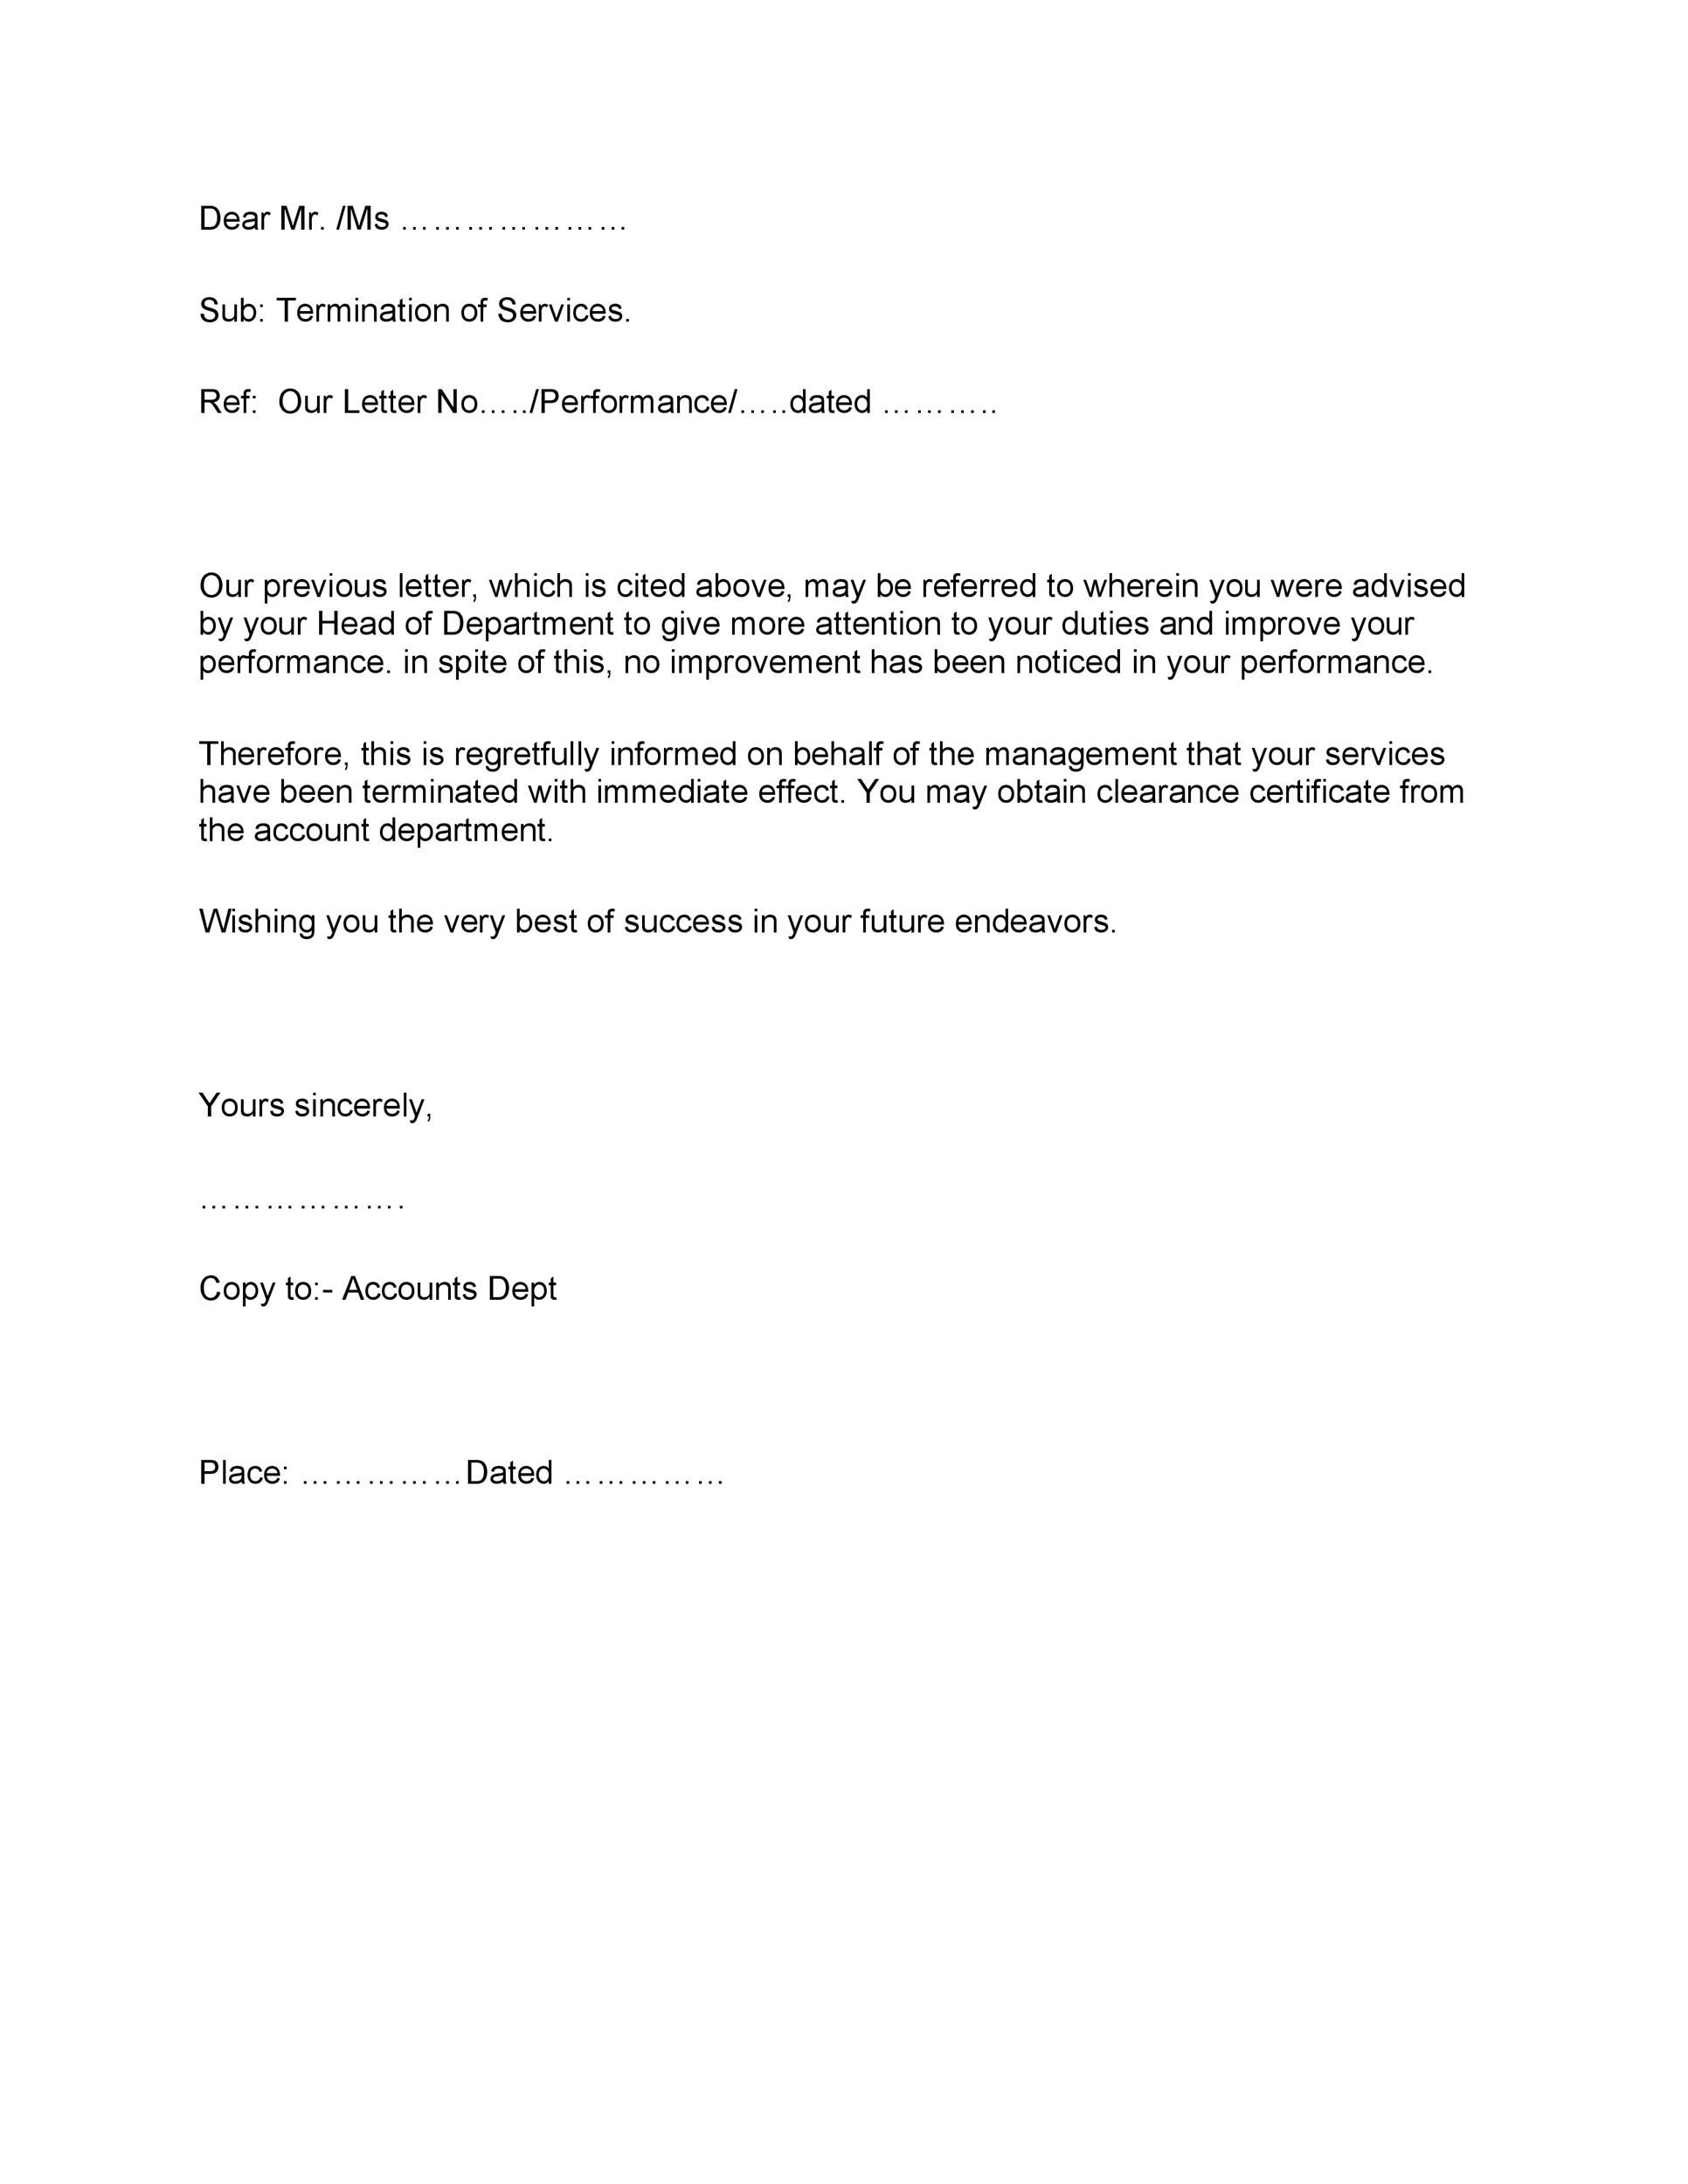 35 Perfect Termination Letter Samples Lease, Employee, Contract - Example Of A Termination Letter